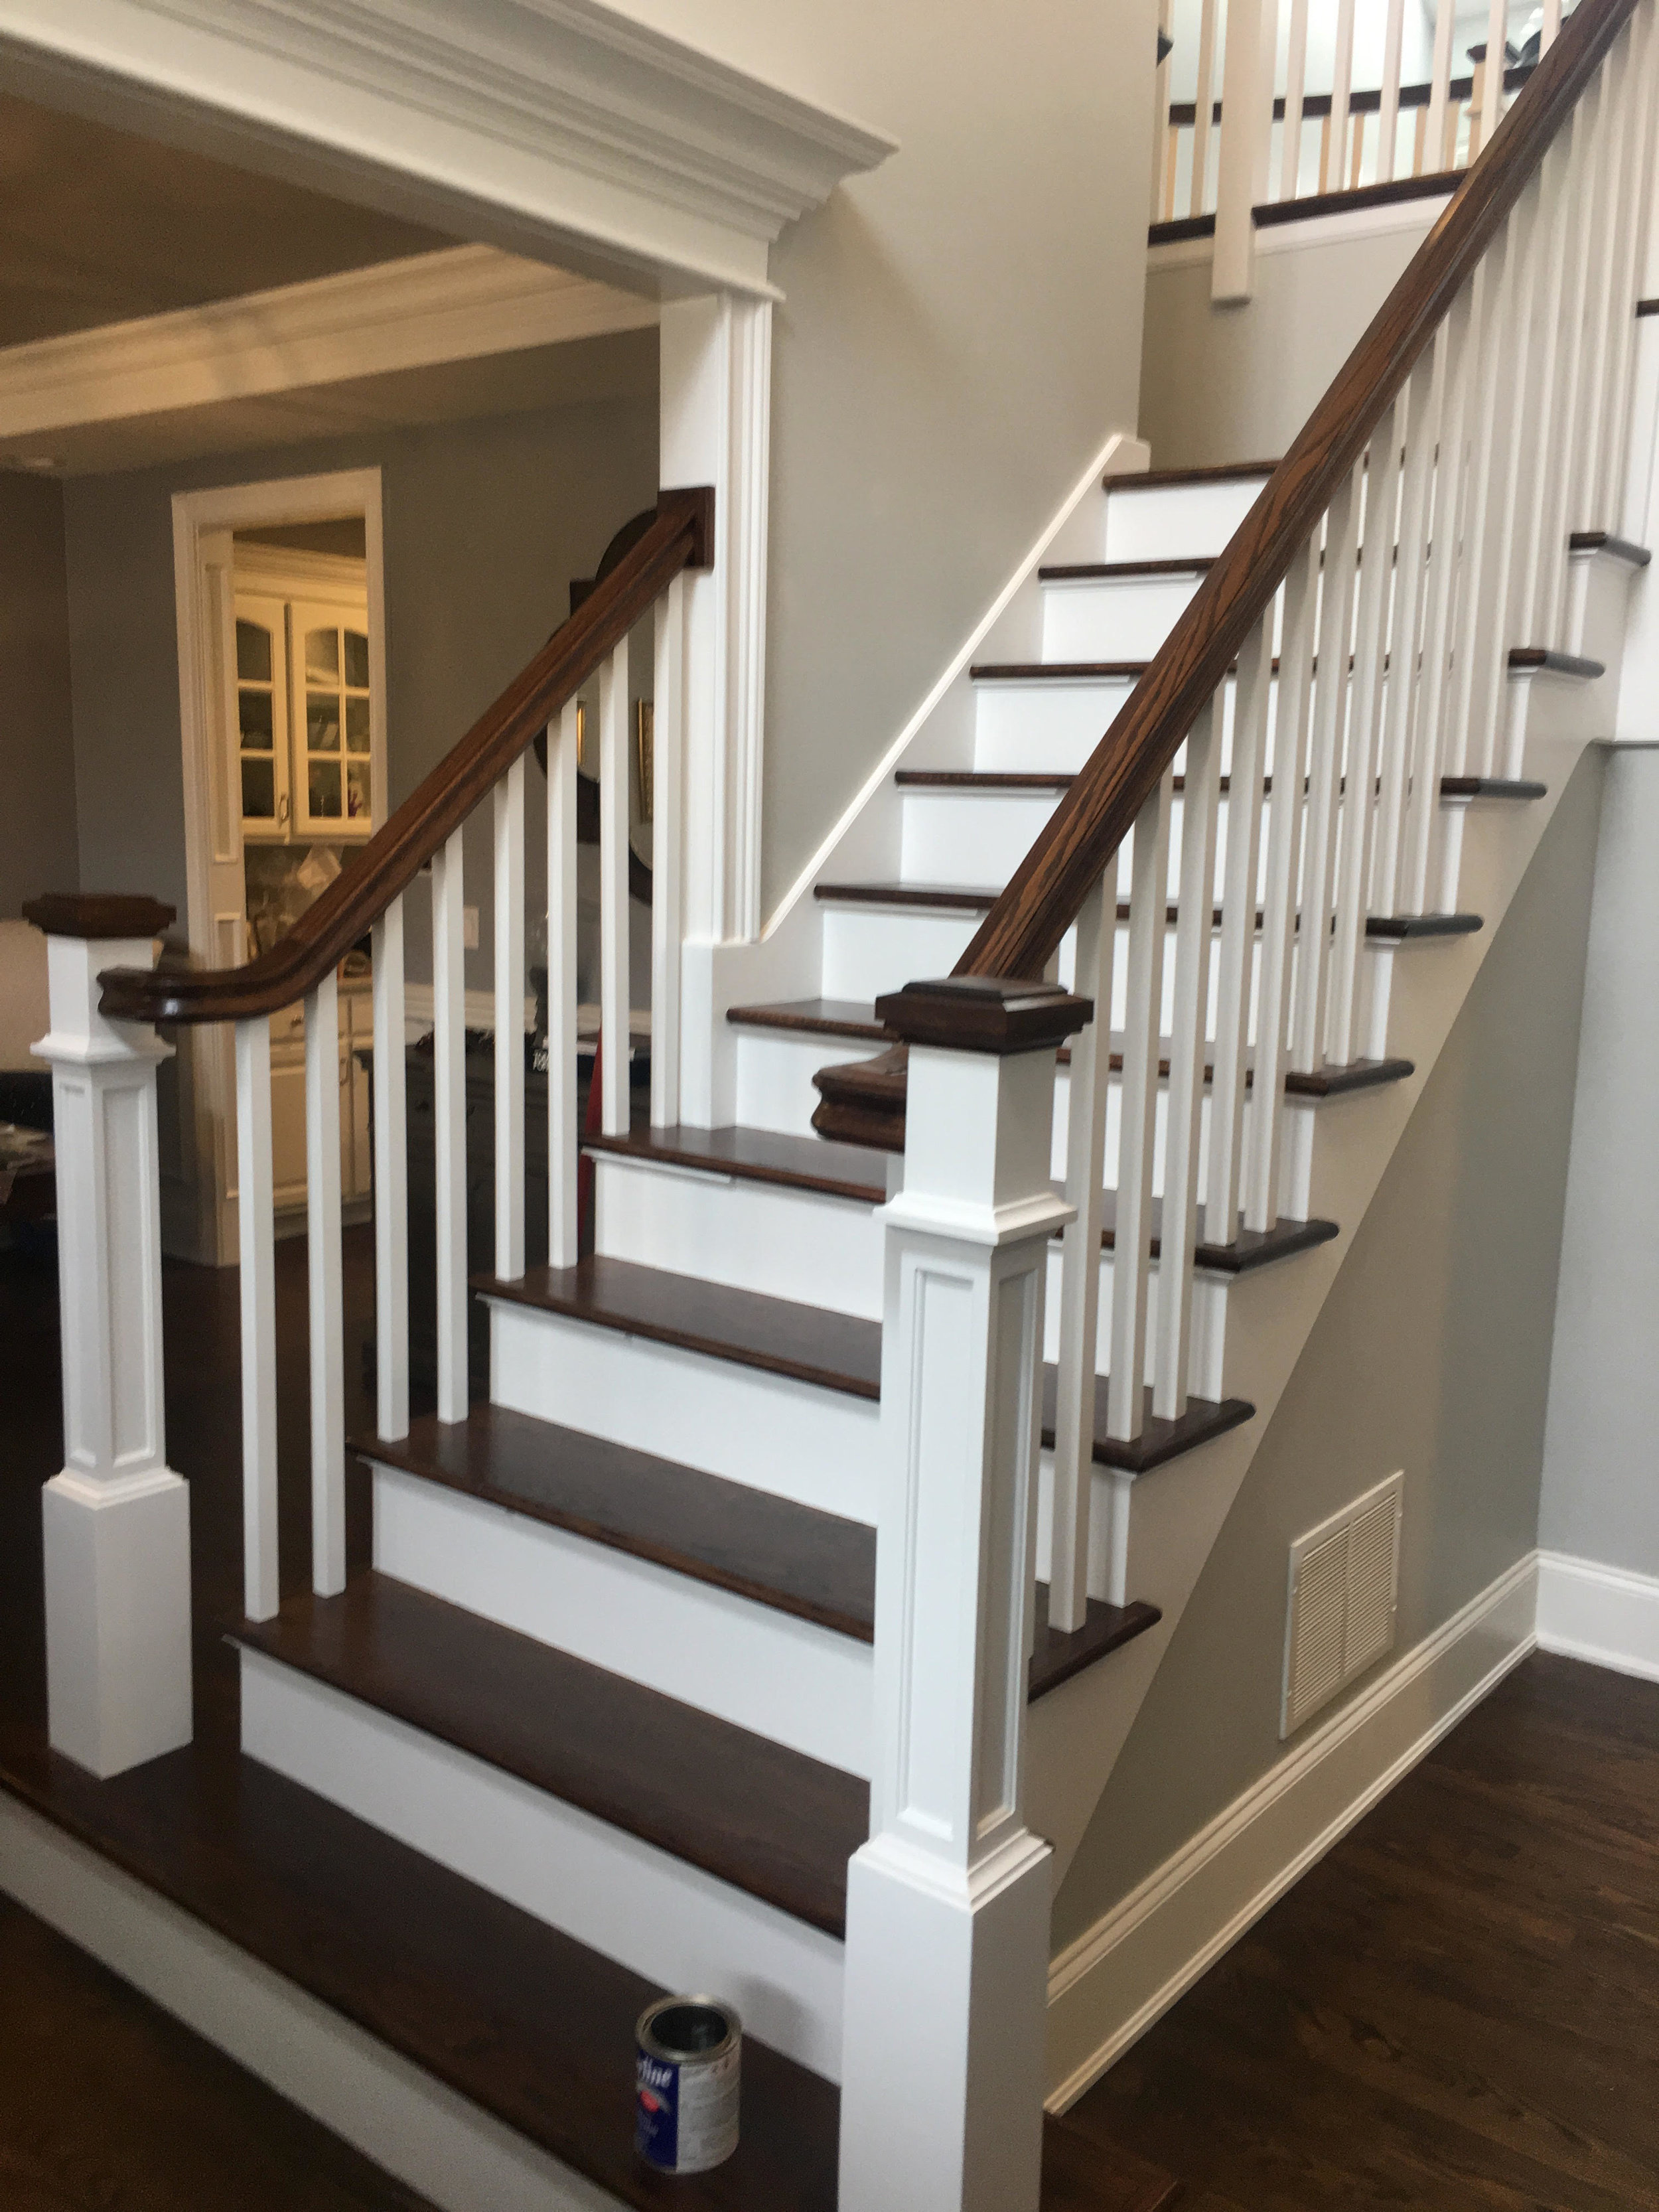 Glen Ellyn Custom Staircase Remodeling by Southampton Builders LLC. Foyer Staircase Remodeling & Updating